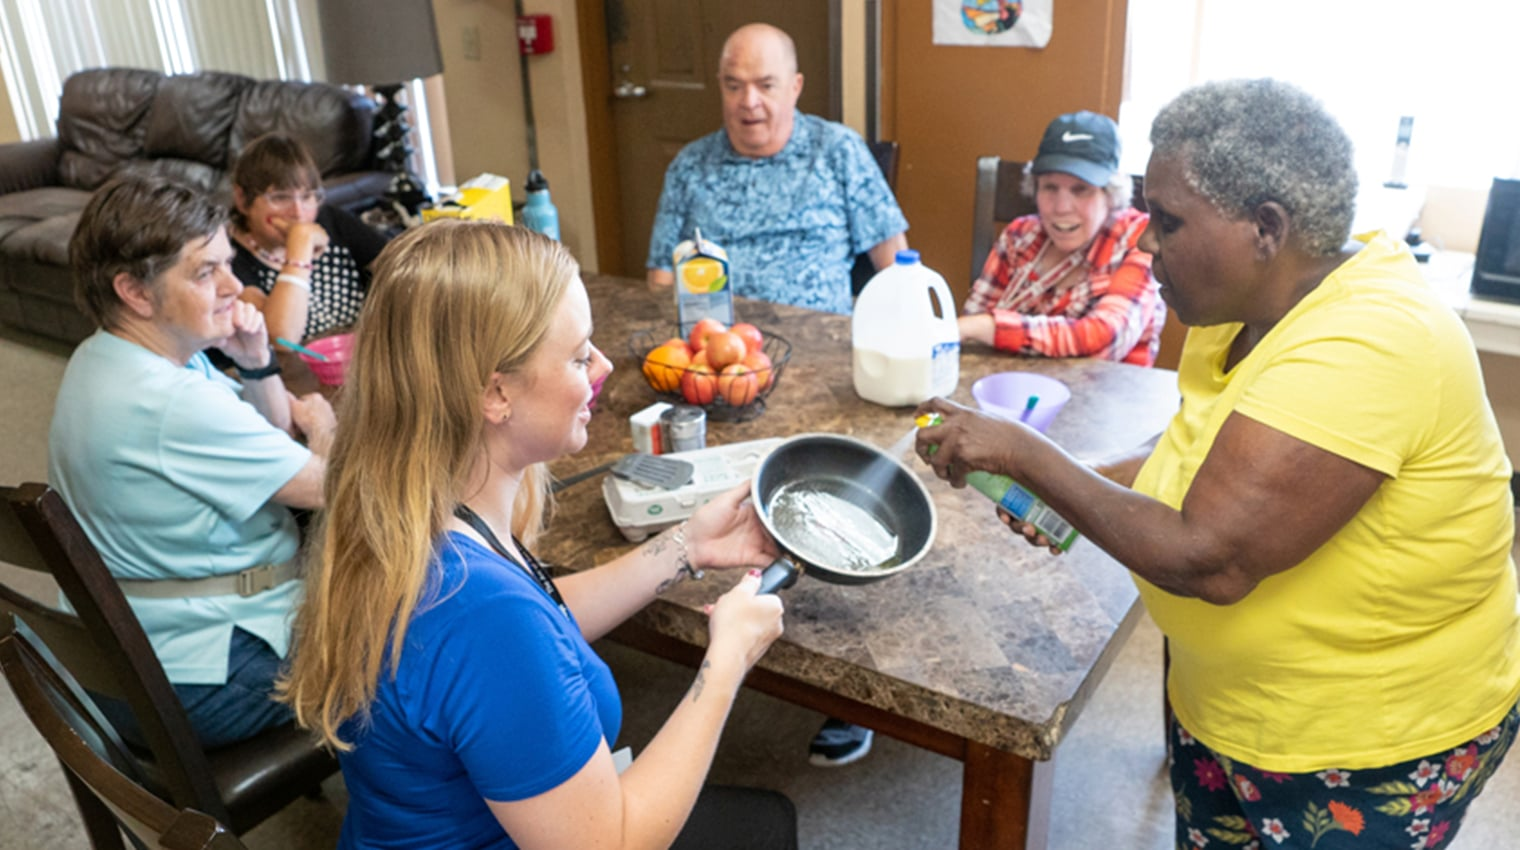 People in a community home preparing a meal together